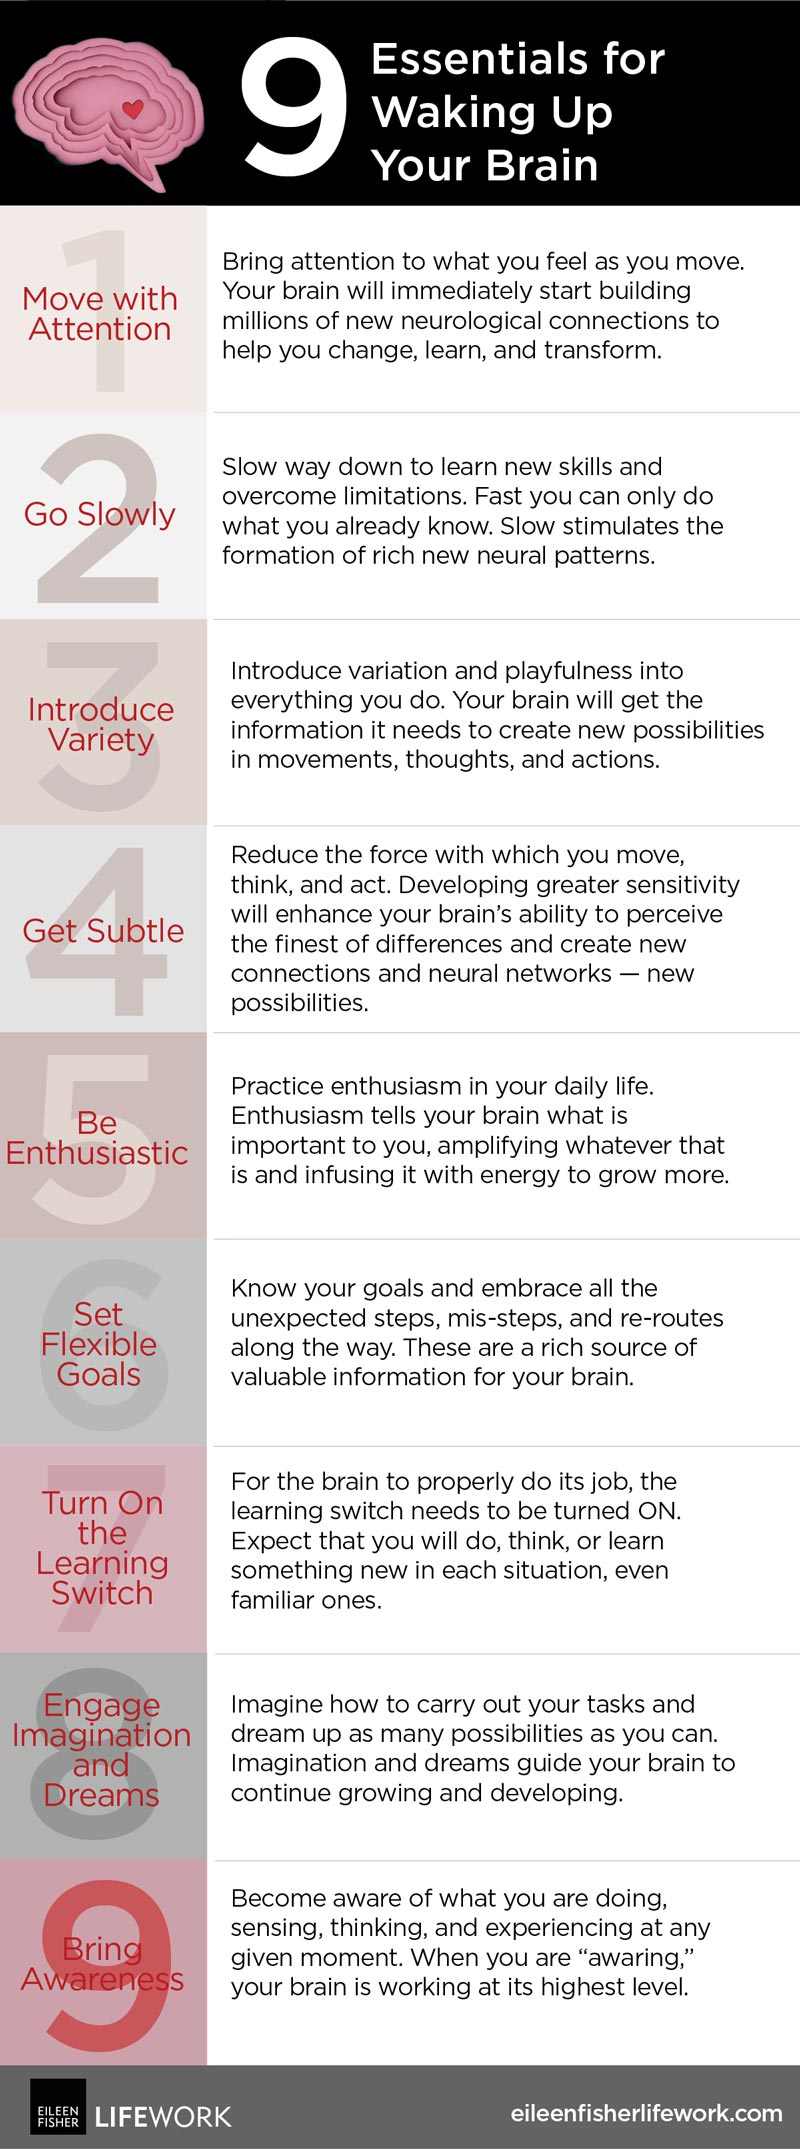 9 Ways To Wake Up Your Brain